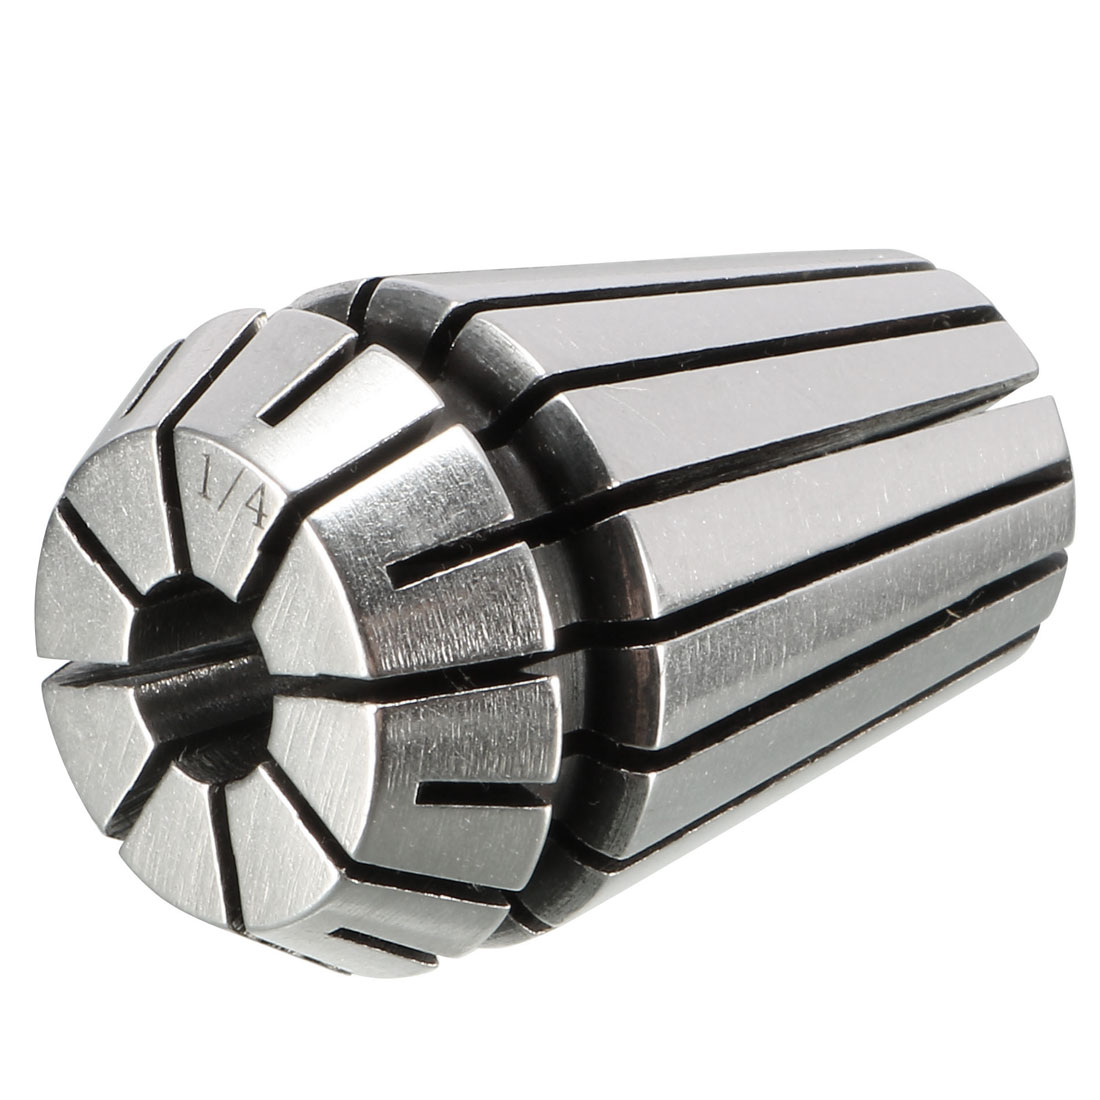 "ER20 1/4"" Clamping Dia CNC Engraving Milling Machine Spring Collet"